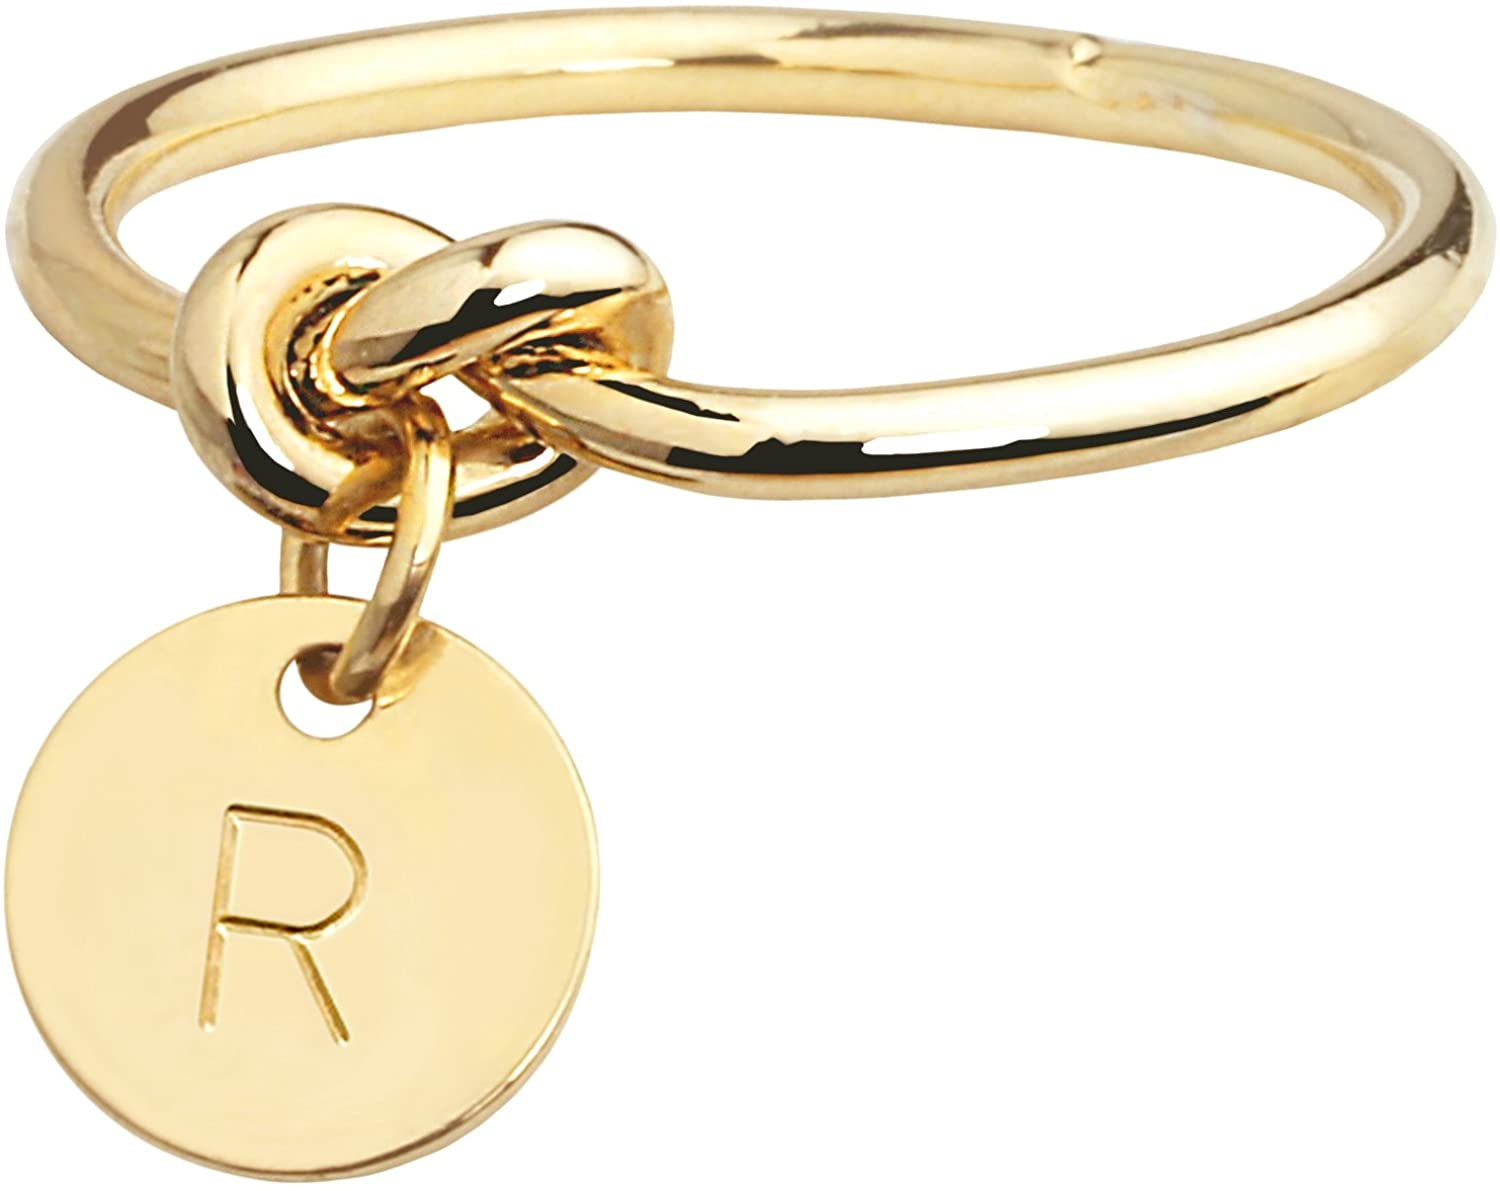 MignonandMignon Gold Knot Ring Midi Personalized Initial Ring Custom Bridesmaid Wedding Maid of Honor Gift for Her Tie The Knot Dainty Friendship Ring - RK-M-TC